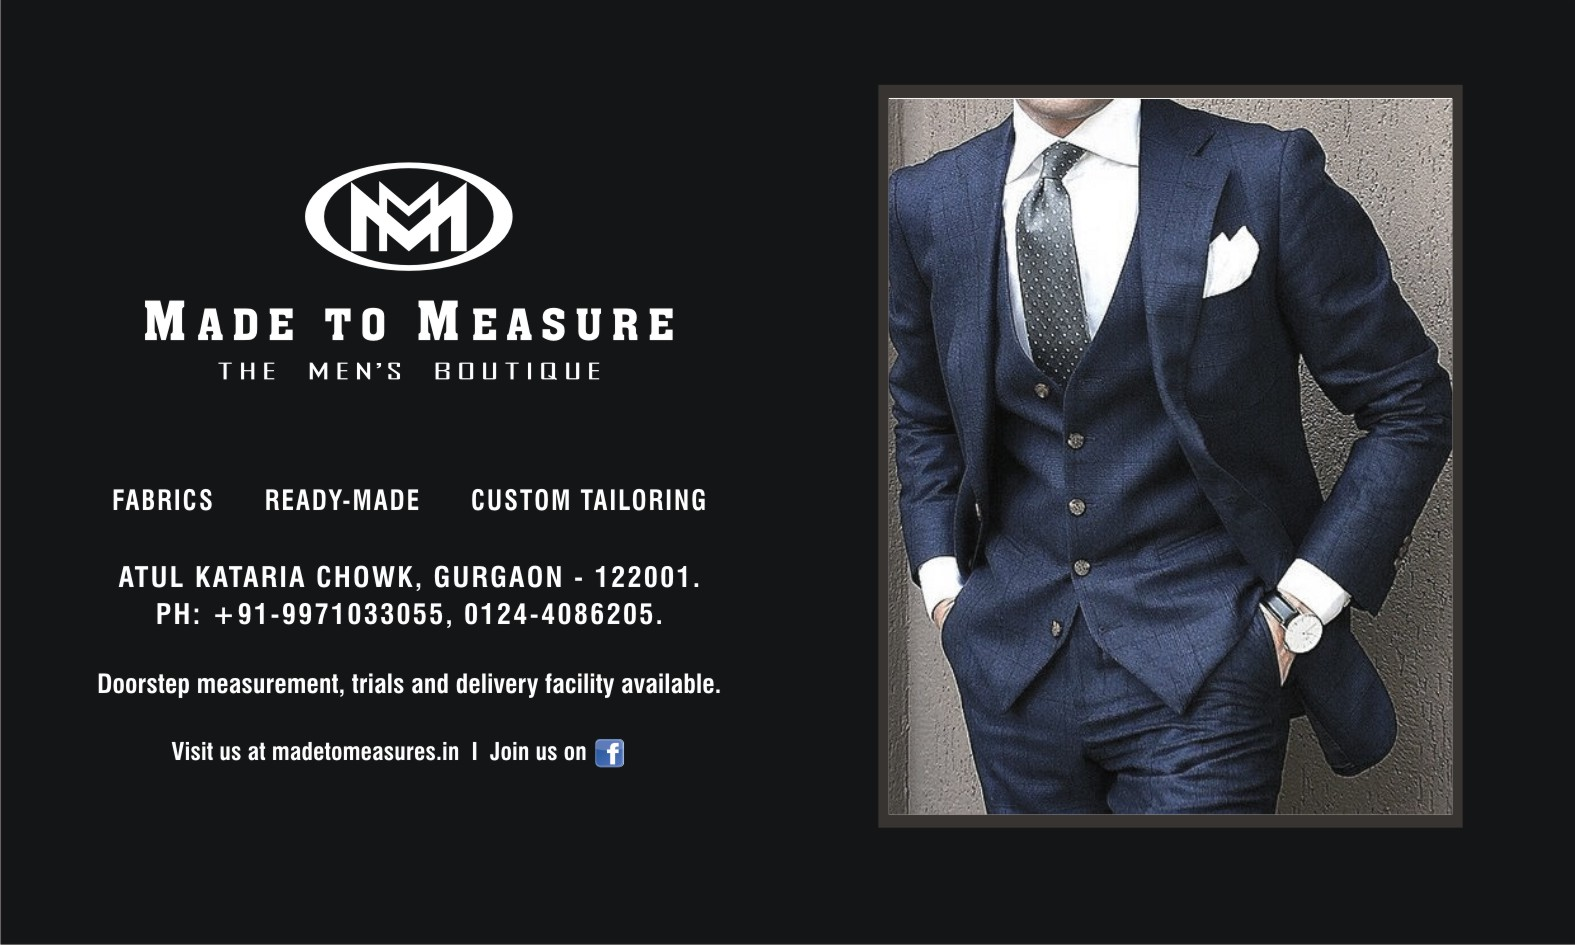 Made To Measure The Men's Boutique